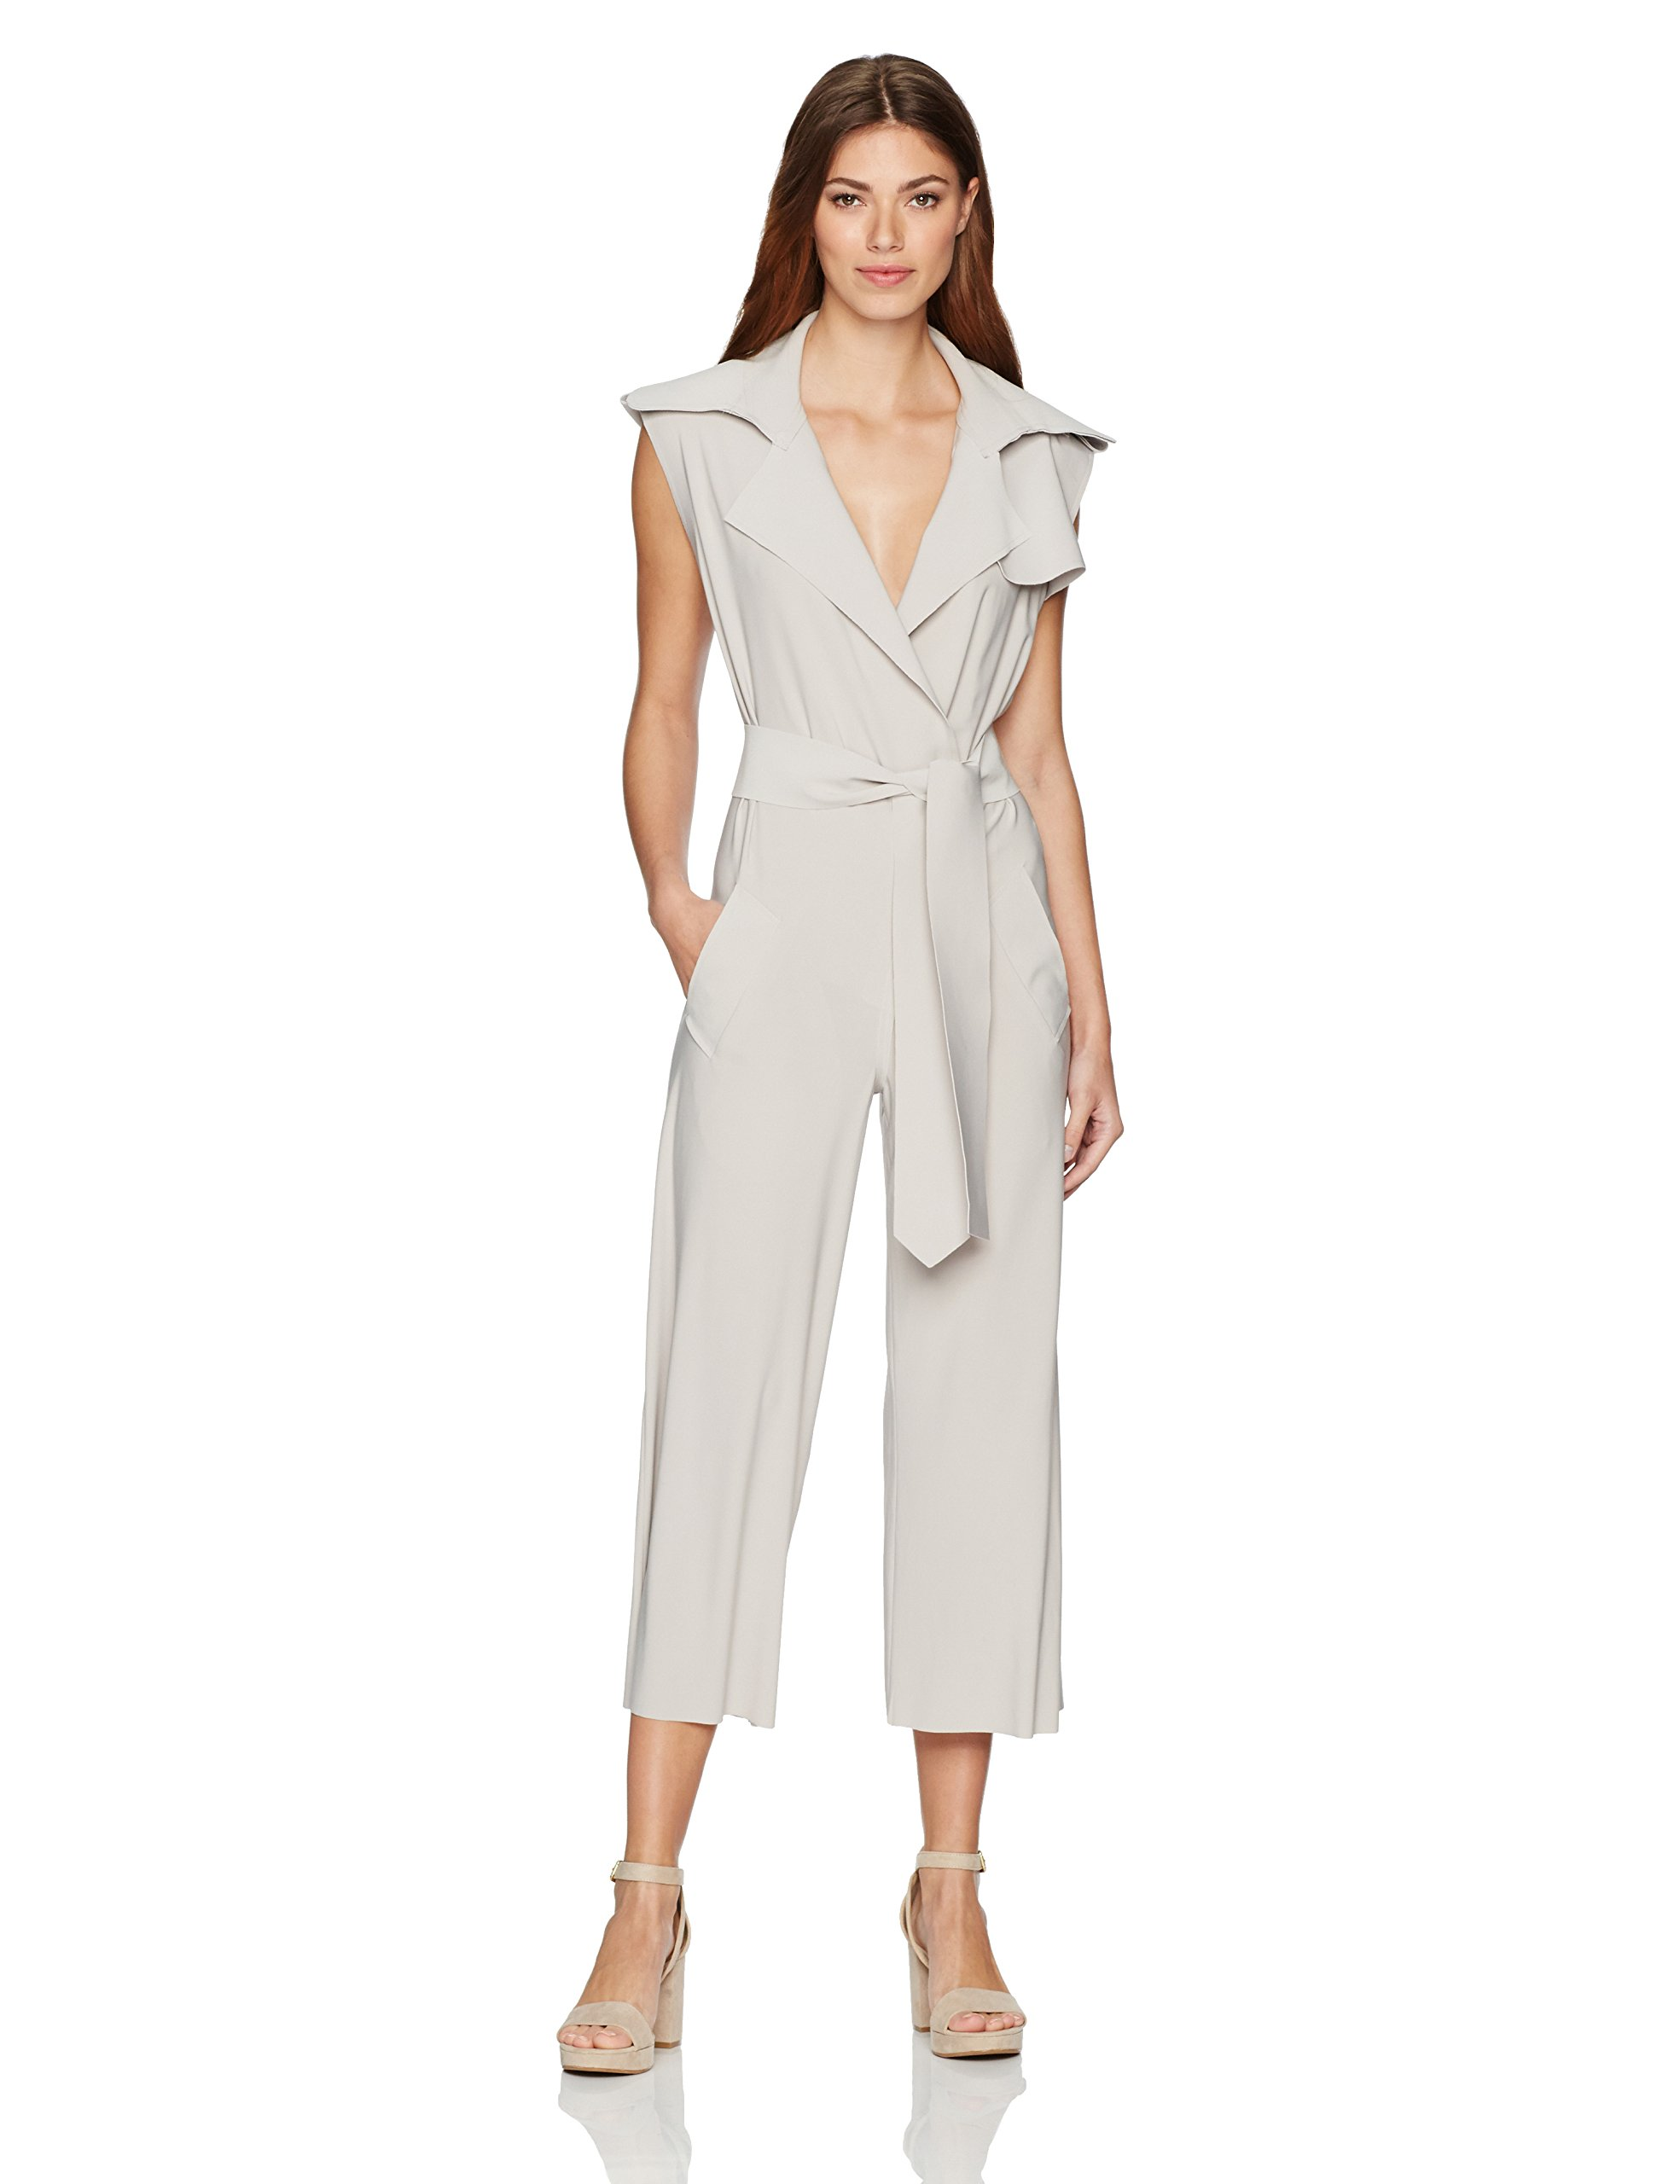 Norma Kamali Women's Double Breasted Trench Sleeveless Cropped Jumpsuit, Oyster, M by Norma Kamali